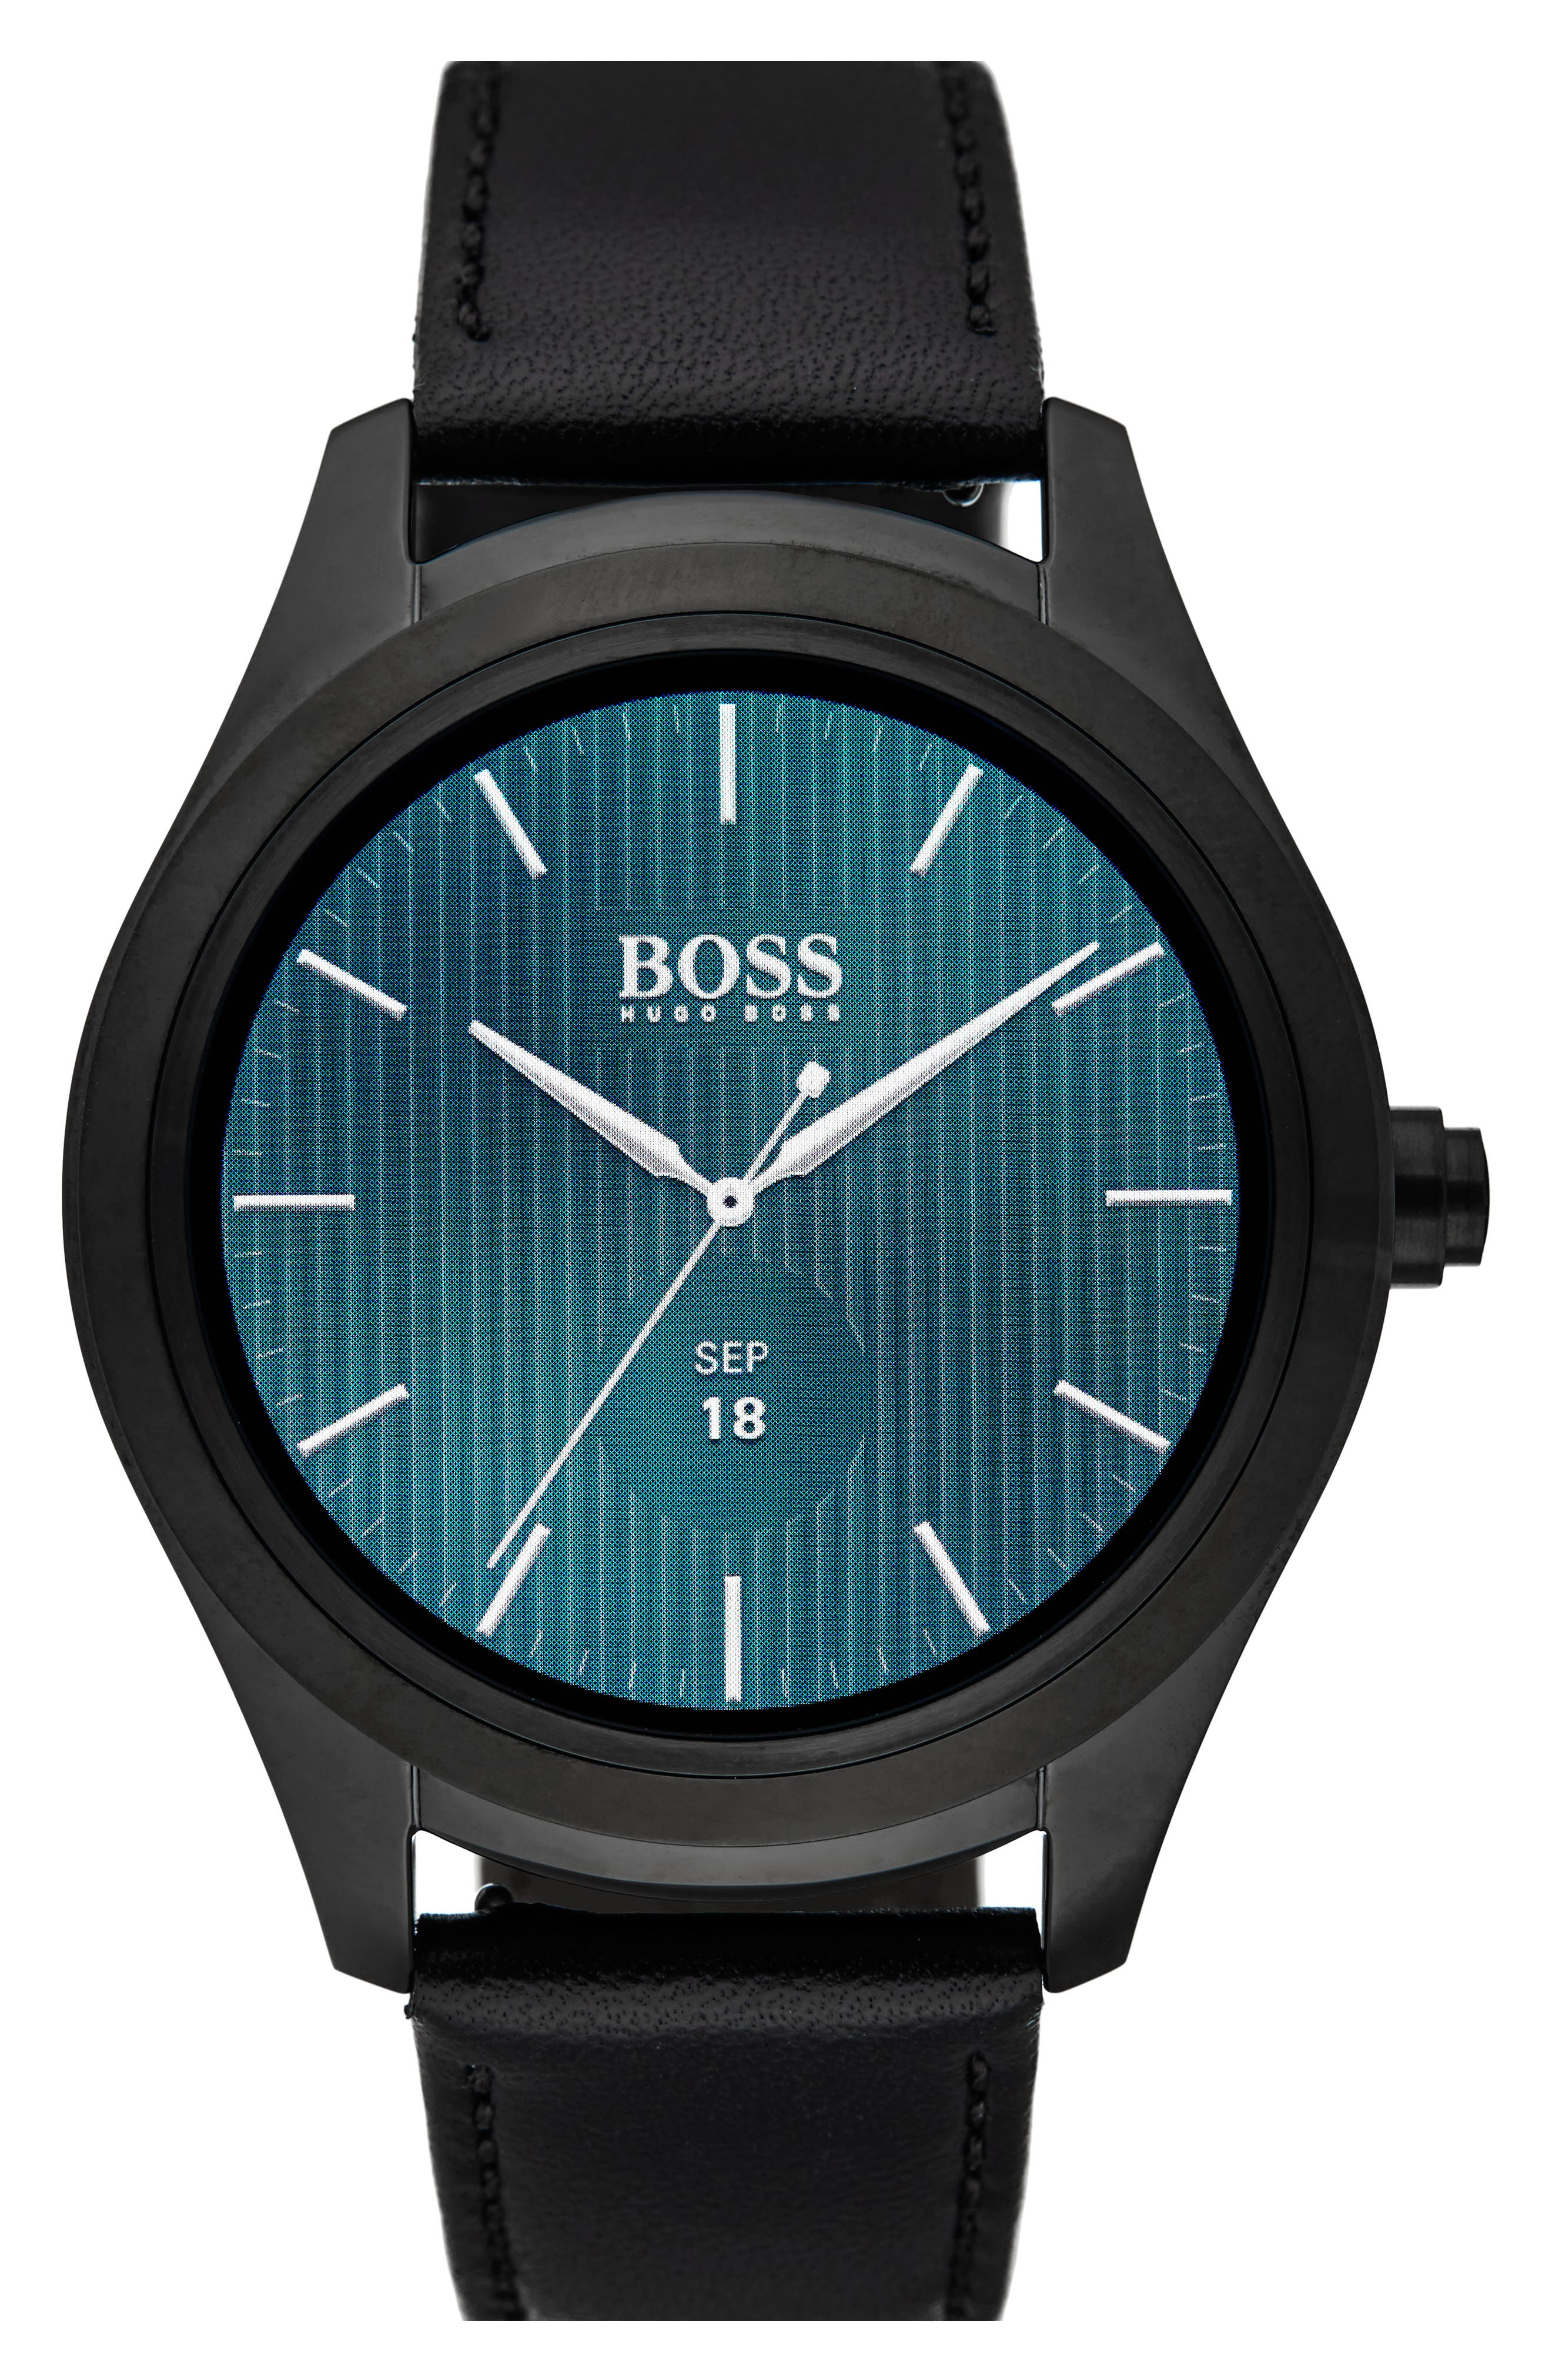 BOSS Touch Leather Strap Smart Watch Set